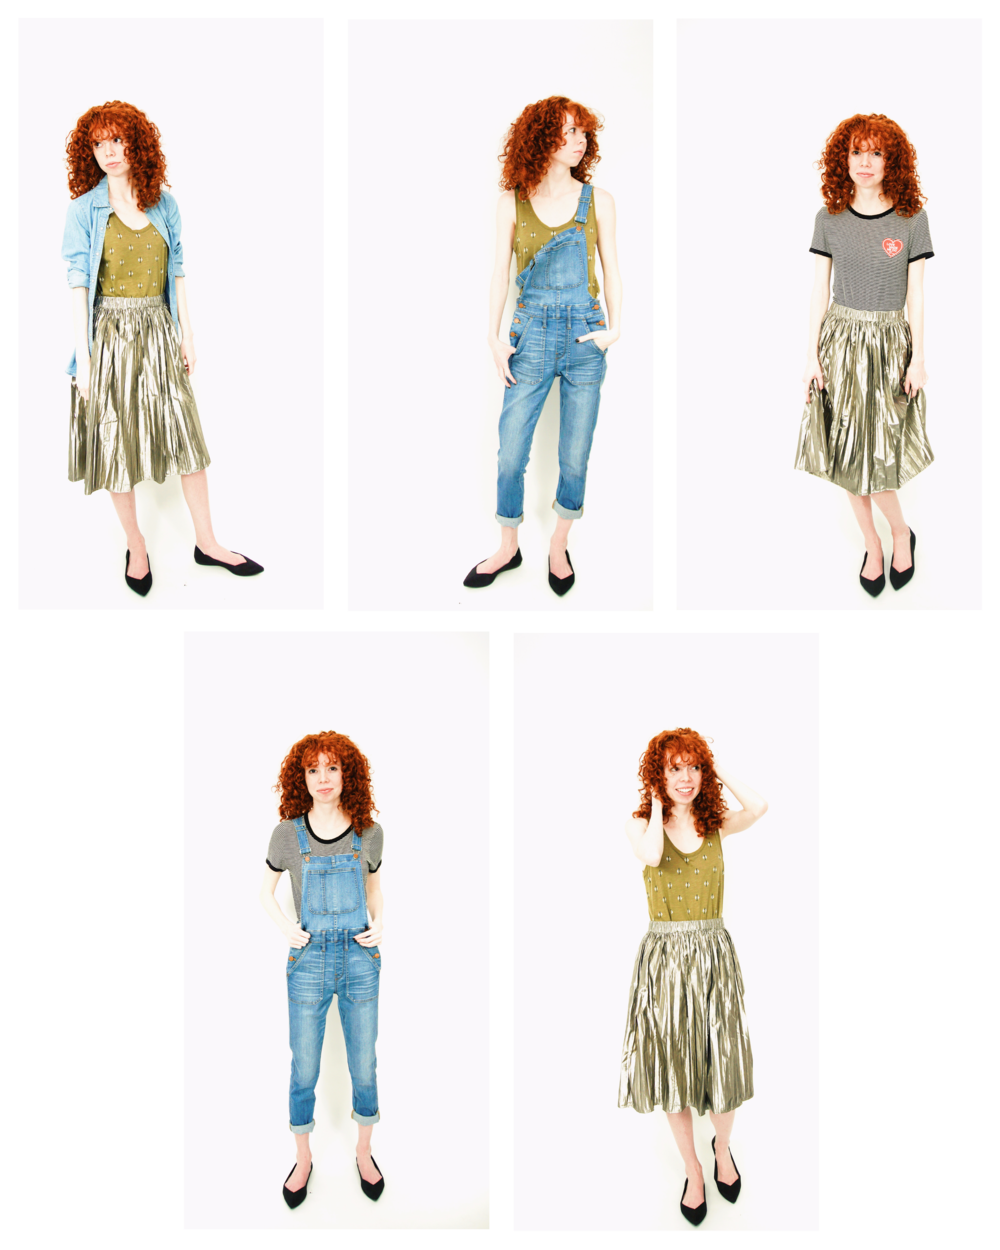 Girl in silver skirt, green tank, overalls, black flats, and chambray shirt